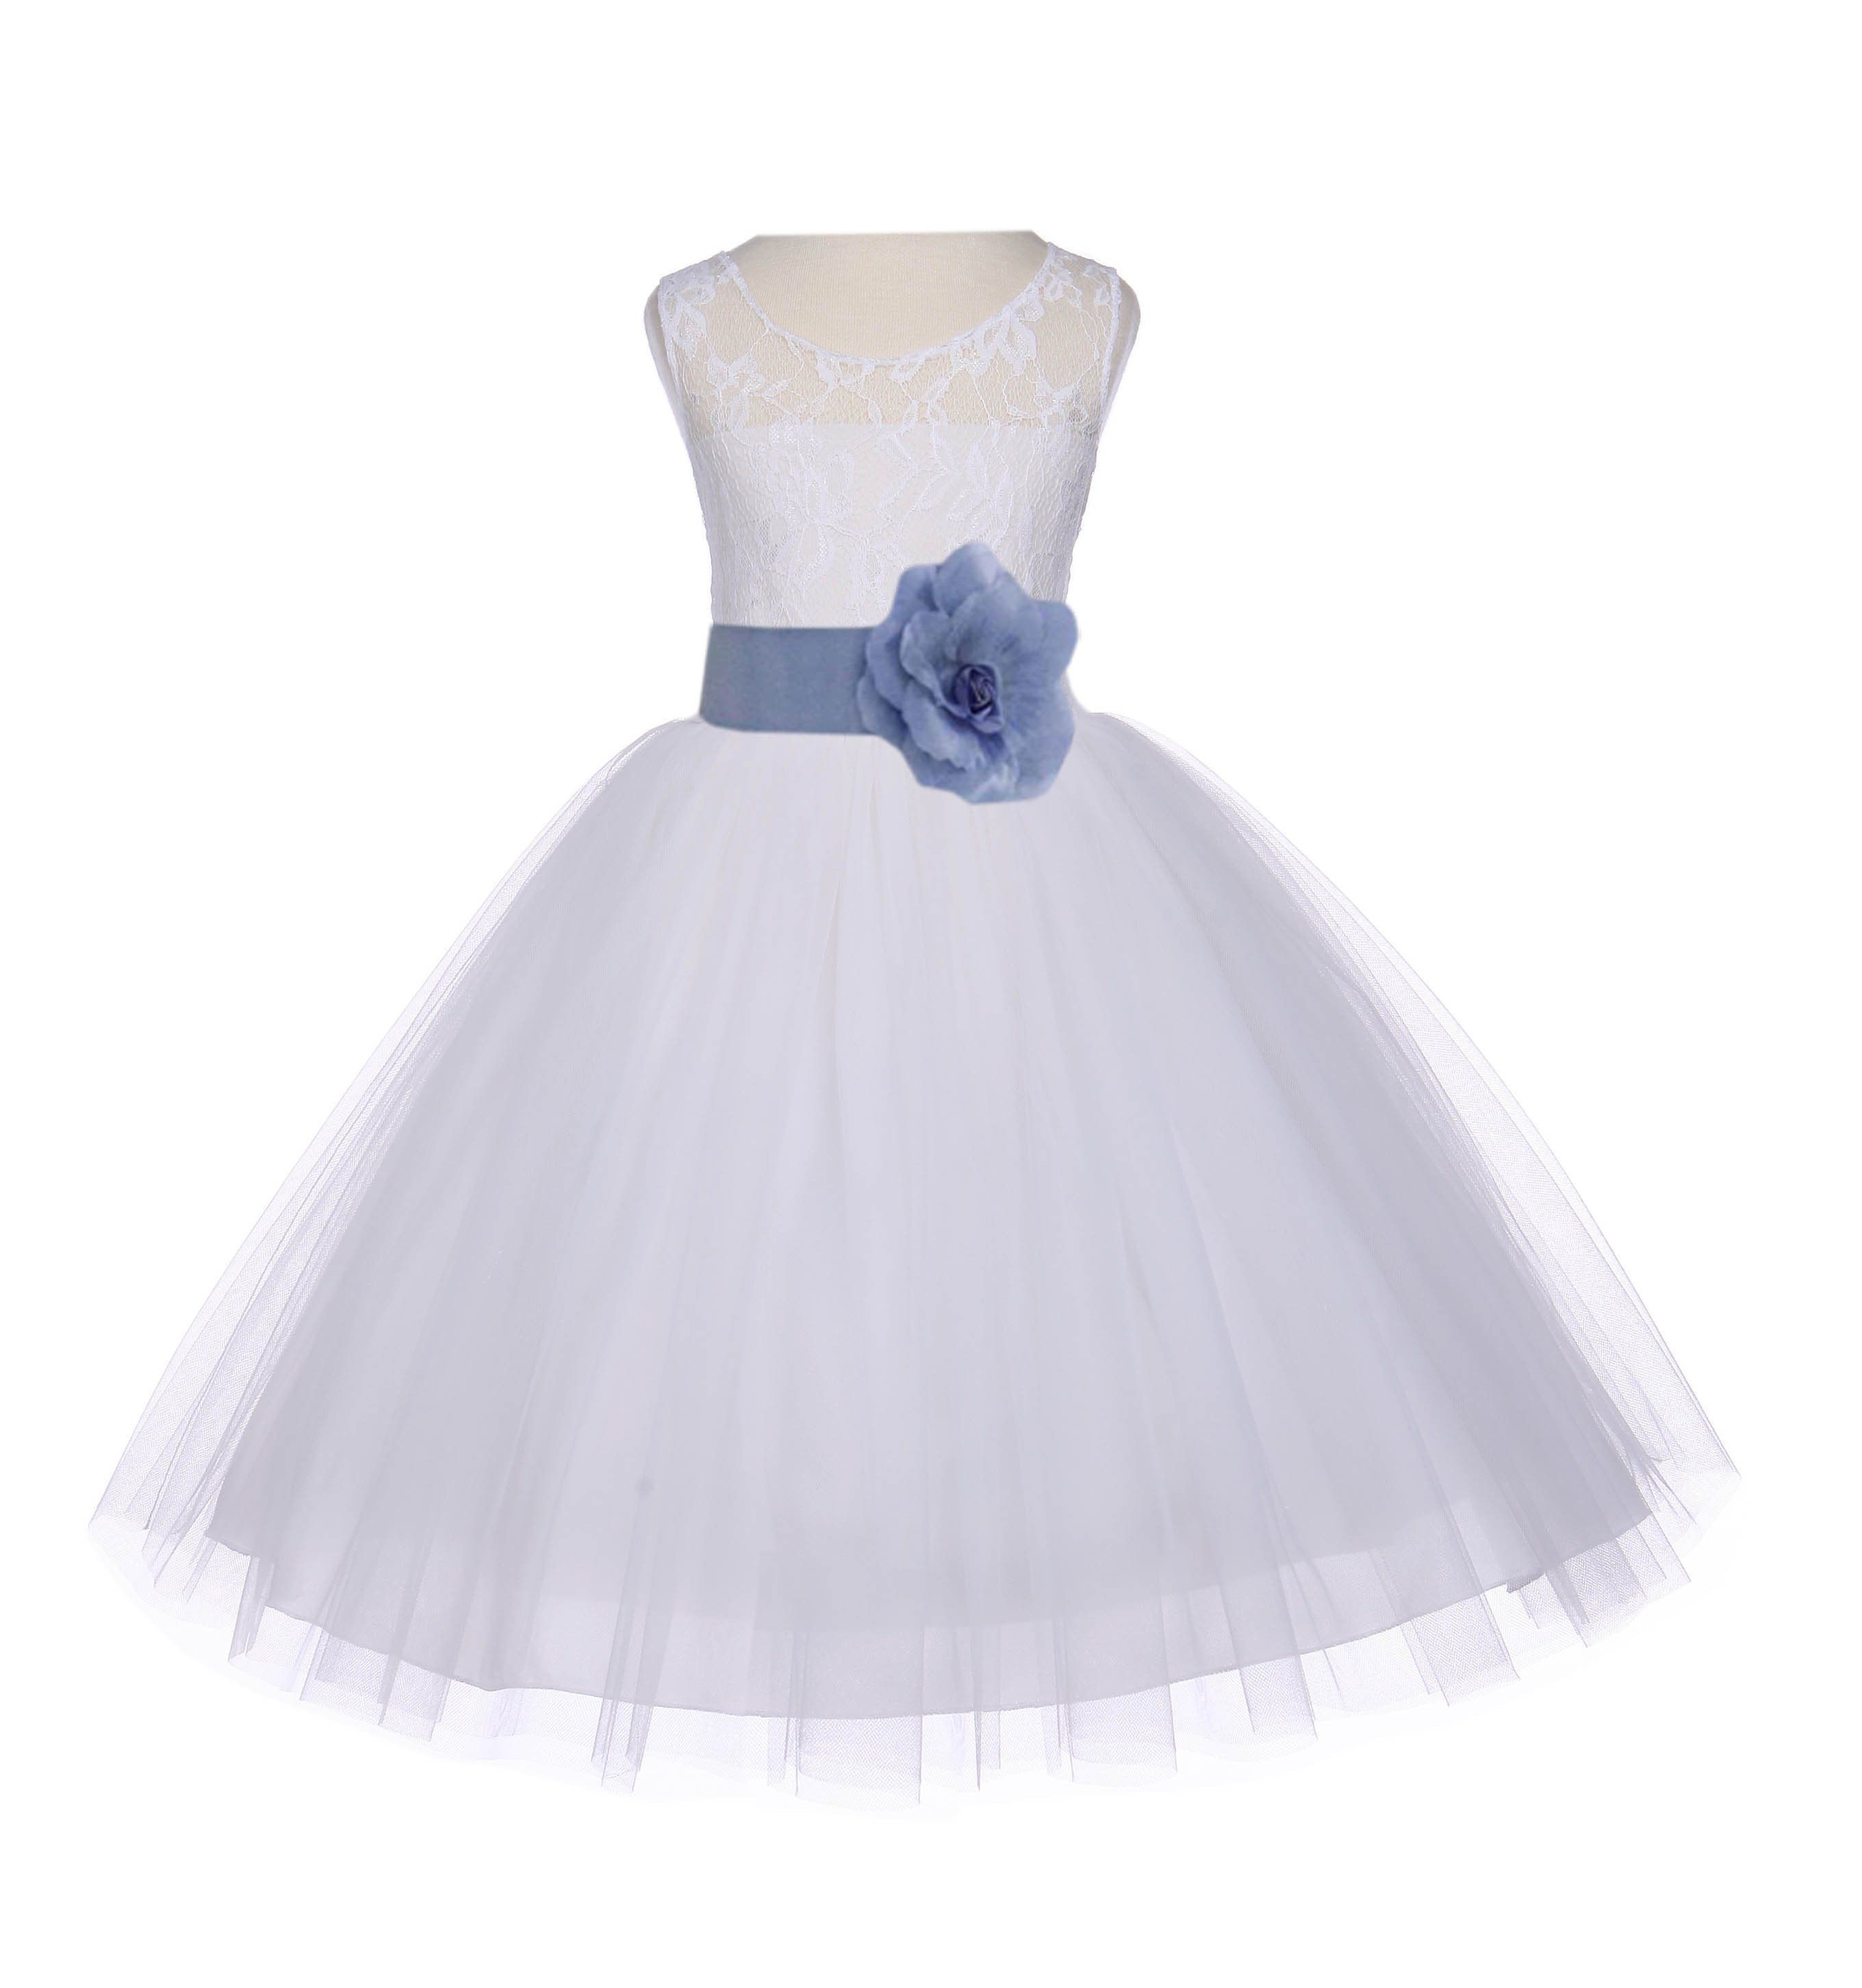 853f05e4f03 We used an additional petticoat for the picture that is not included with  the dress